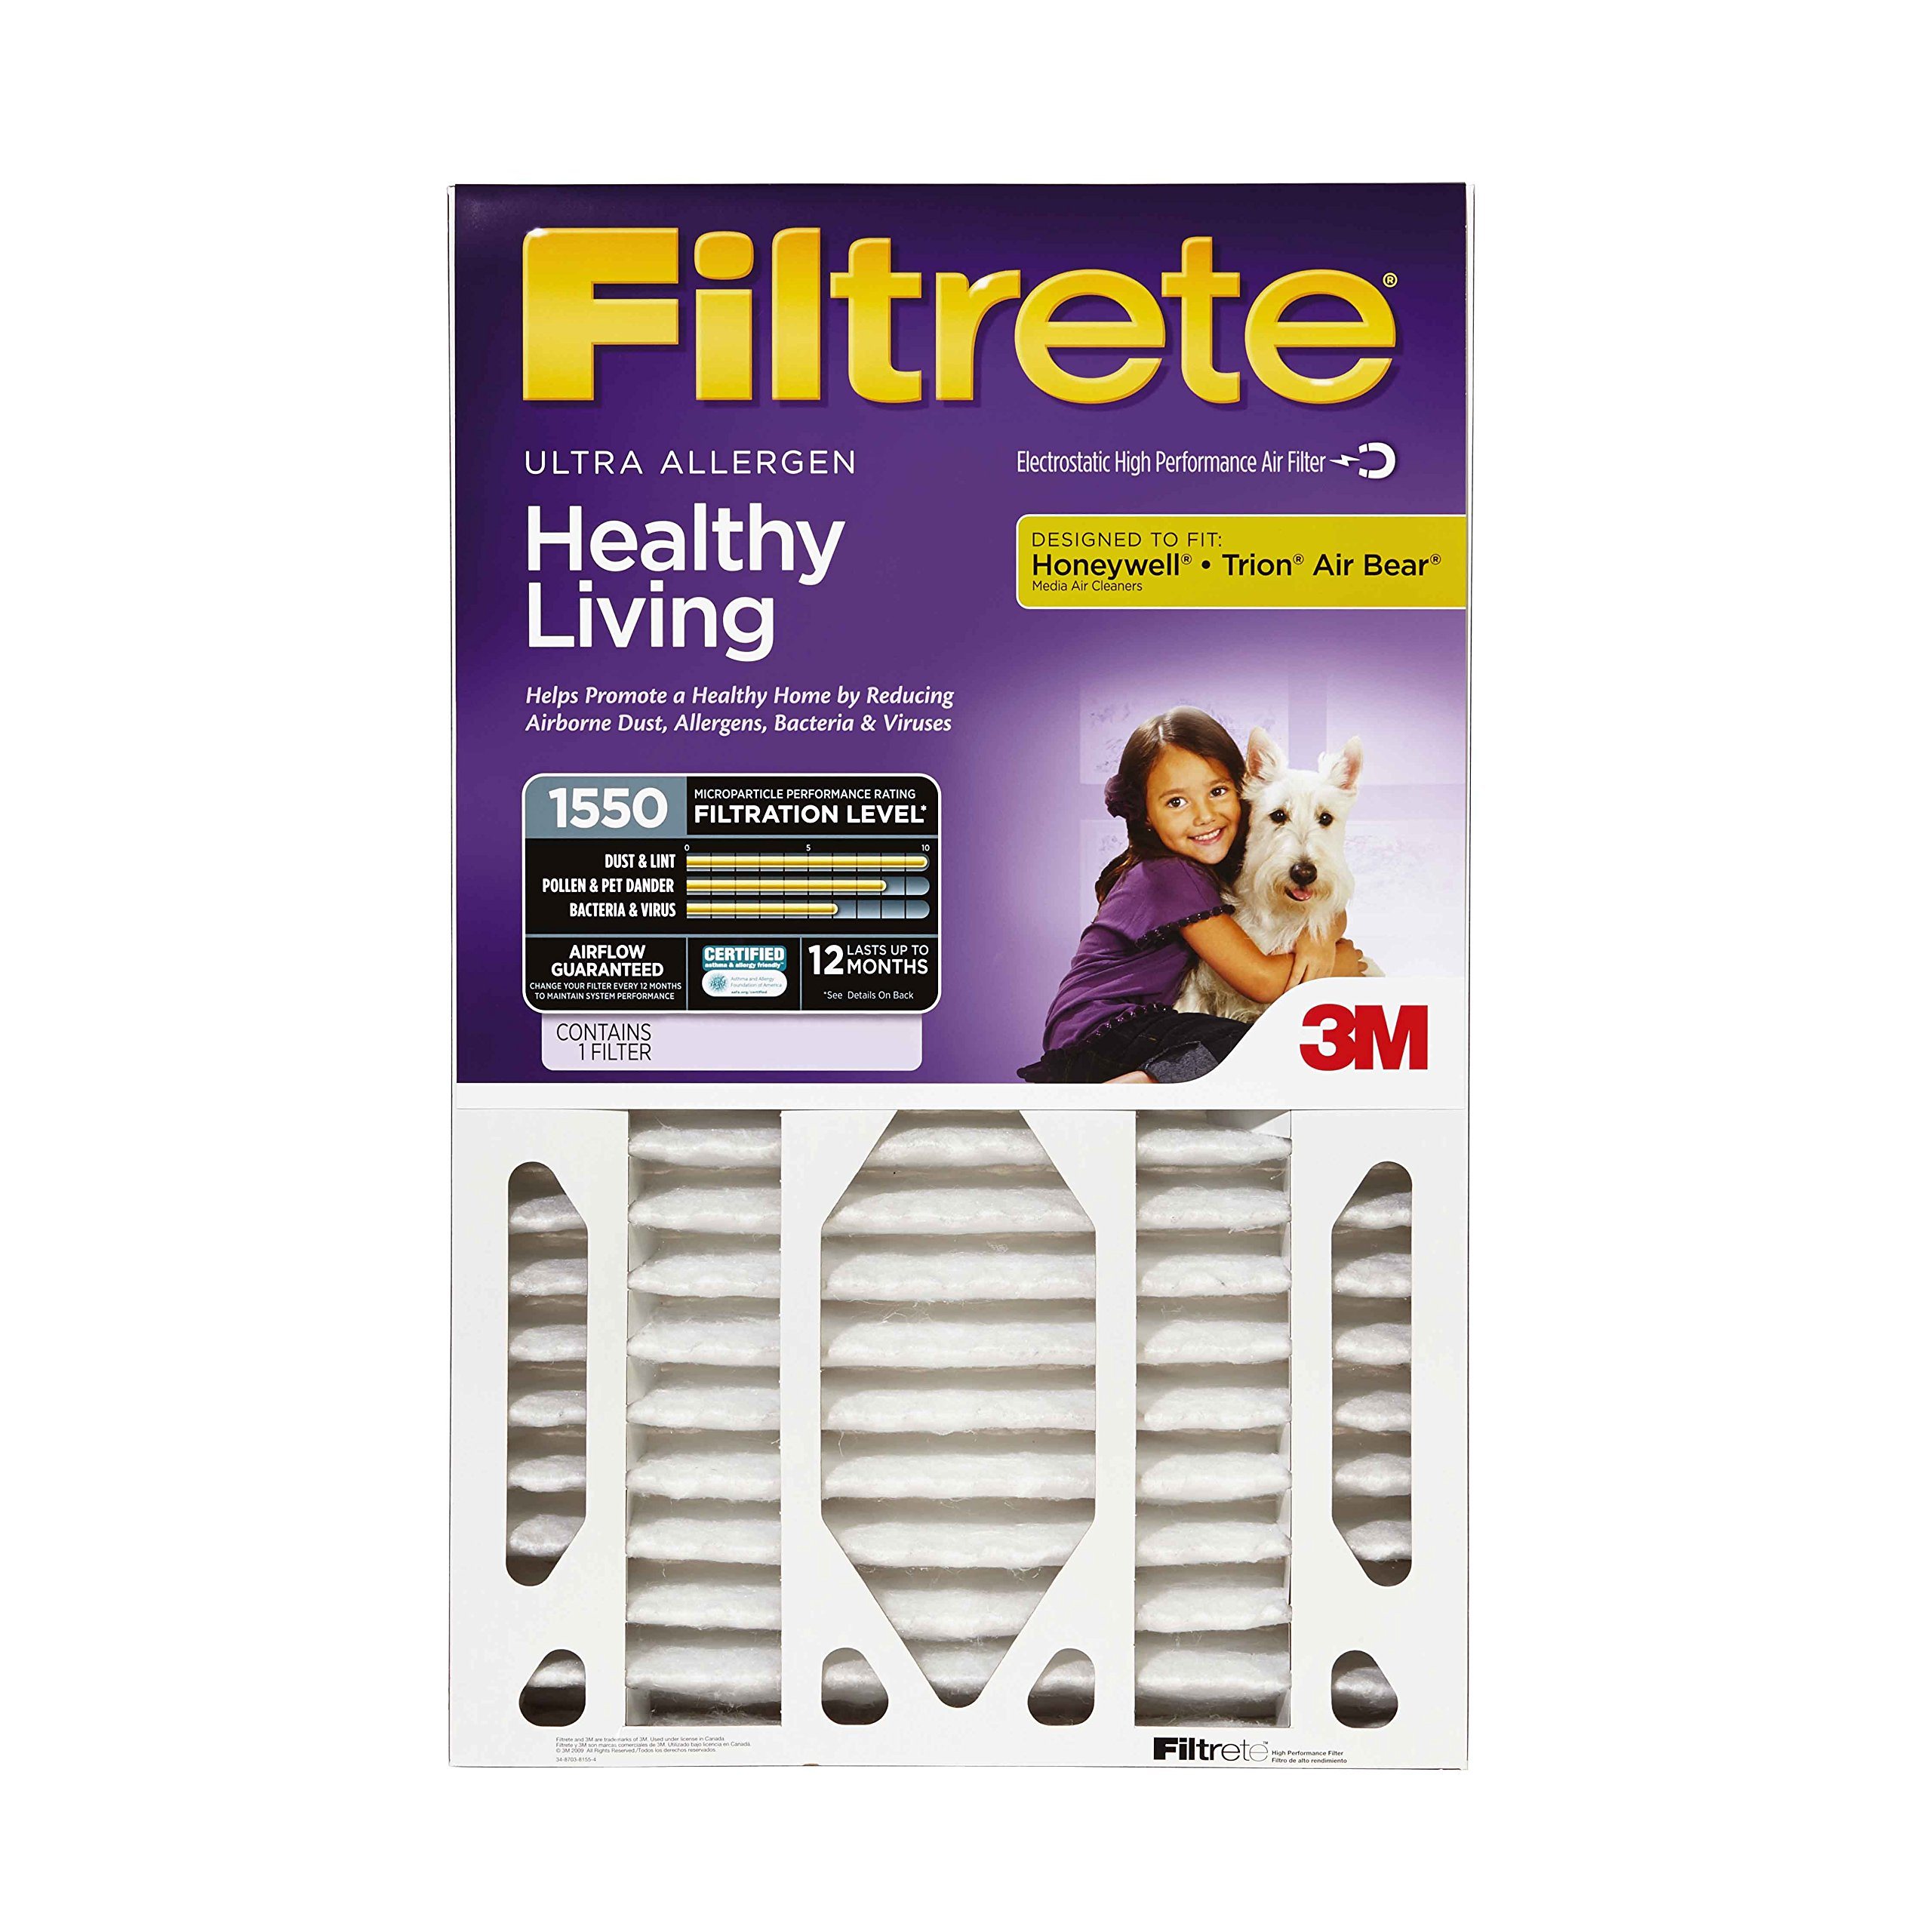 Filtrete Healthy Living Ultra Allergen Deep Pleat AC Furnace Air Filter, Attracts Microscopic Particles, MPR 1550, 20 x 25 x 4 (4-3/8 Actual Depth), 4-Pack by Filtrete